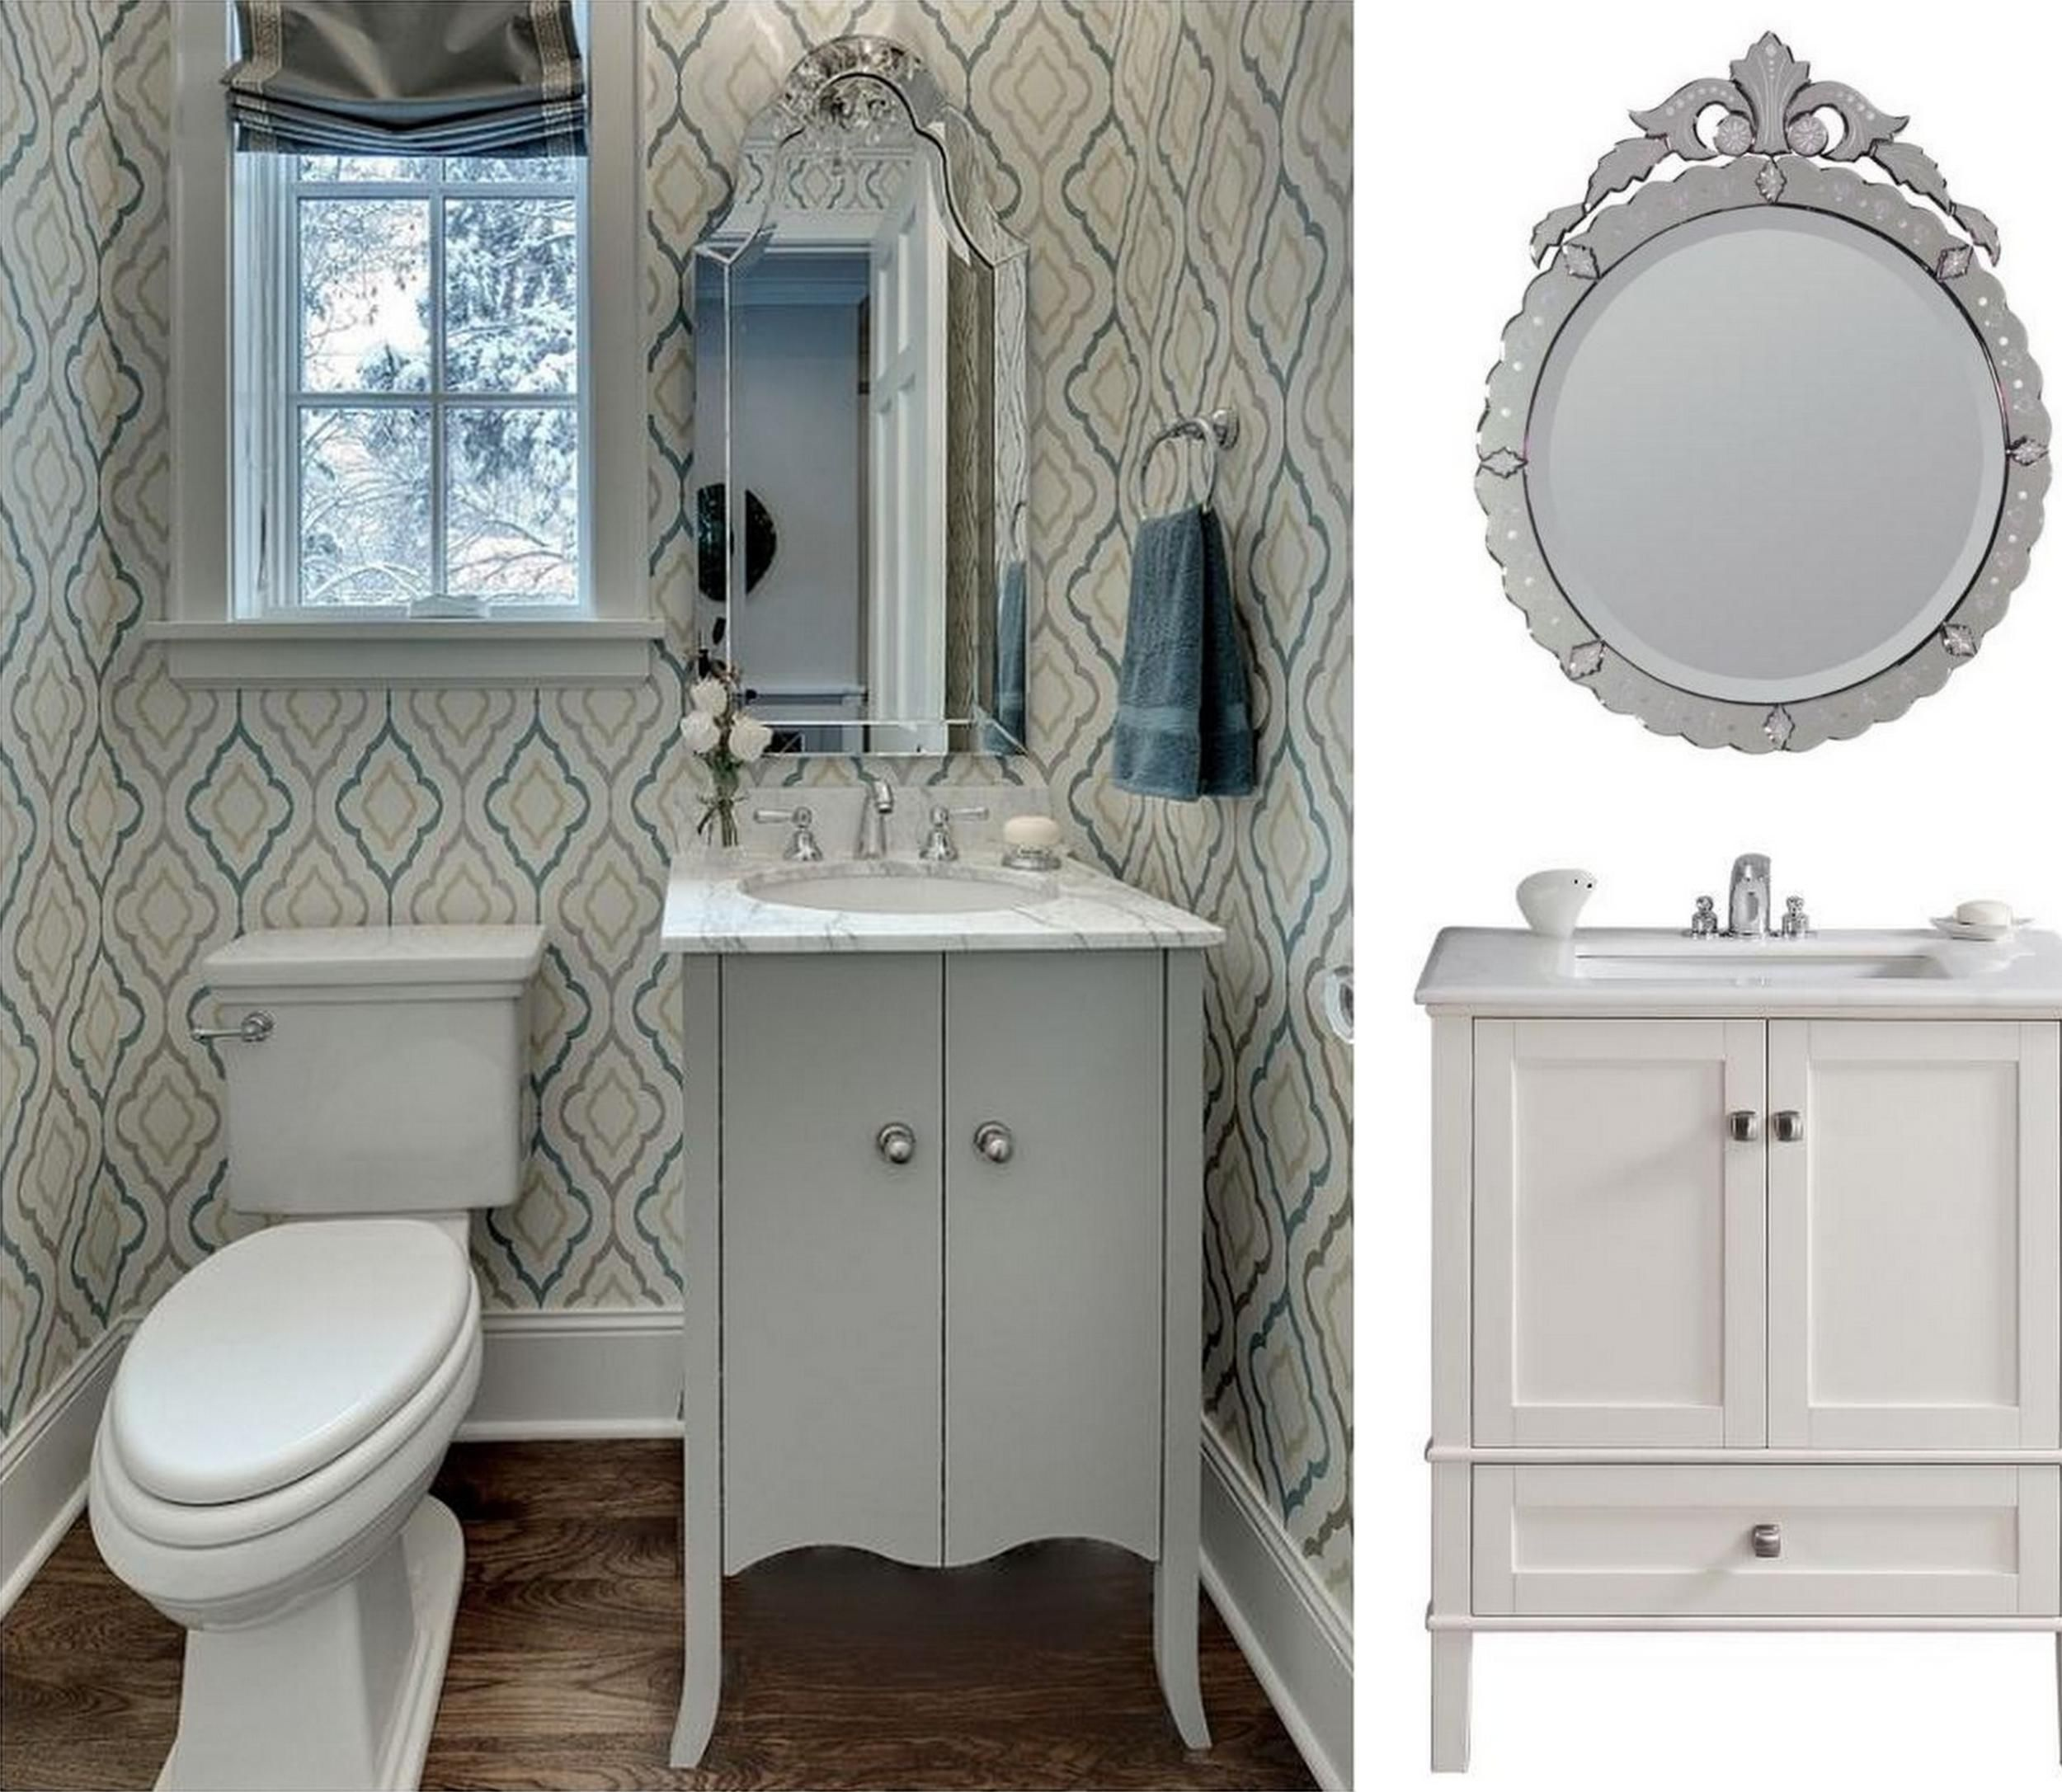 Bathroom Cool Designs Picture Good How To Decorate A Bathroom Large Wallpaper Nice Grey Color Picture Badezimmer Klein Badezimmer Dekor Kleines Bad Dekorieren